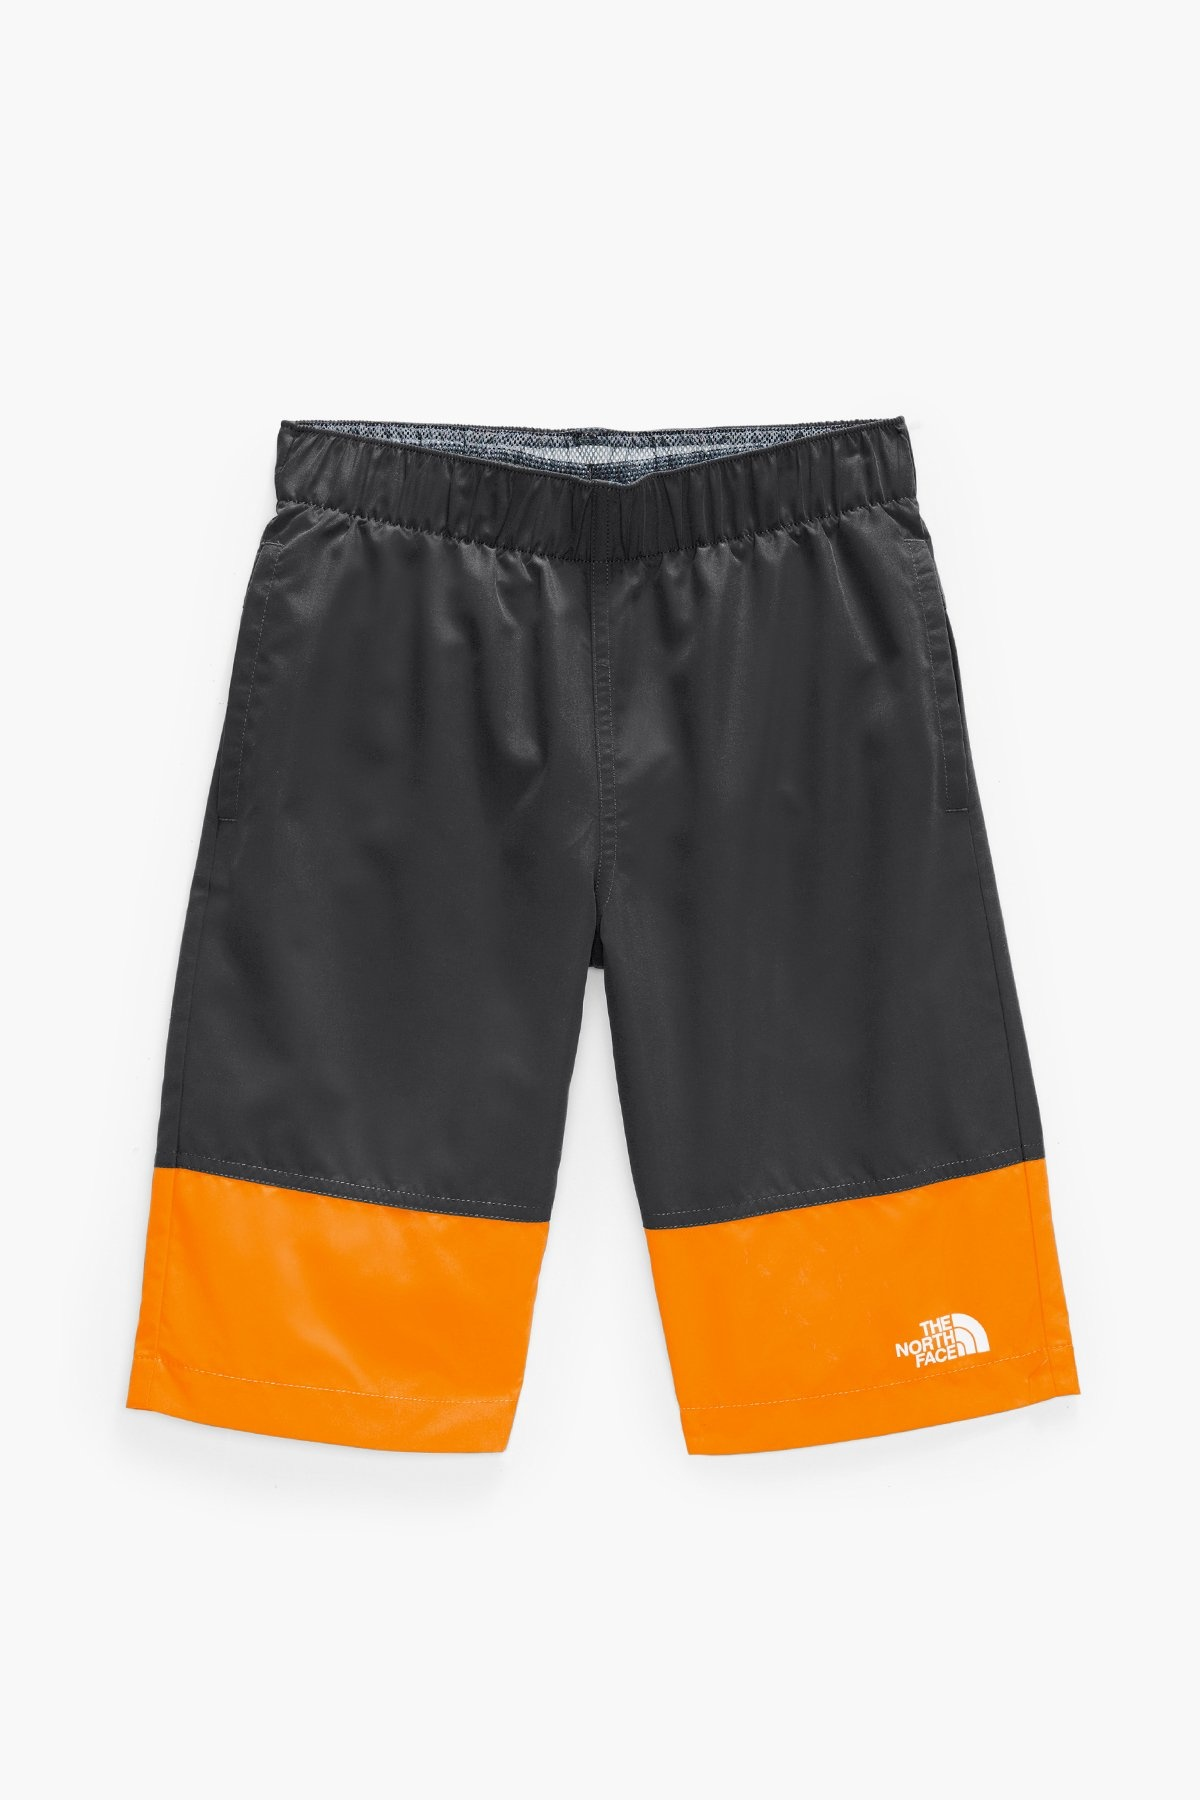 The North Face Boys Water Short Ash Grey Orange